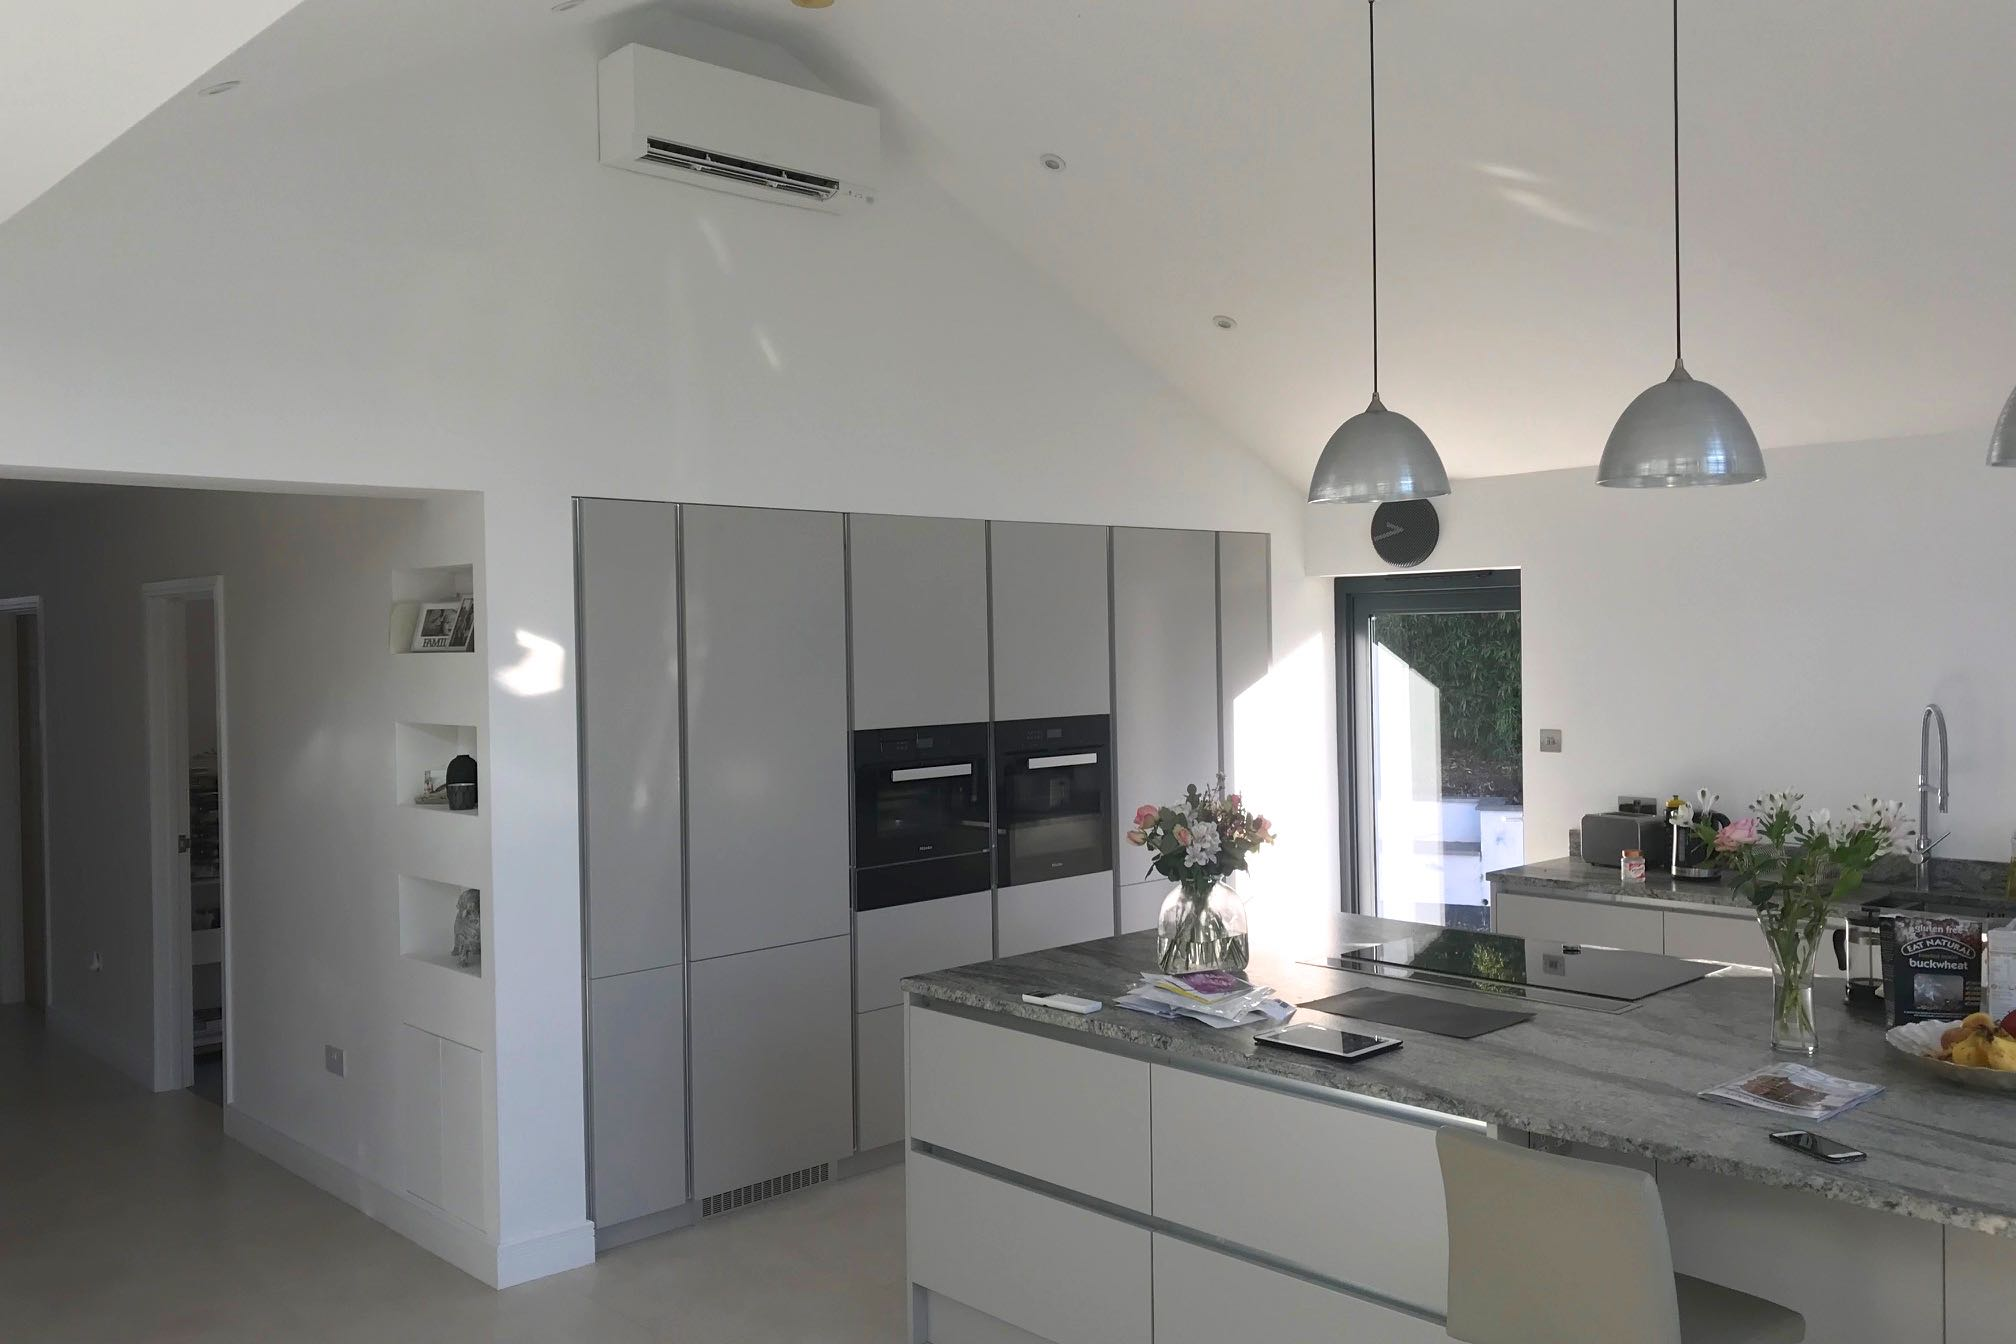 White wall mounted domestic air conditioning unit in open plan kitchen over fridge an oven units side view